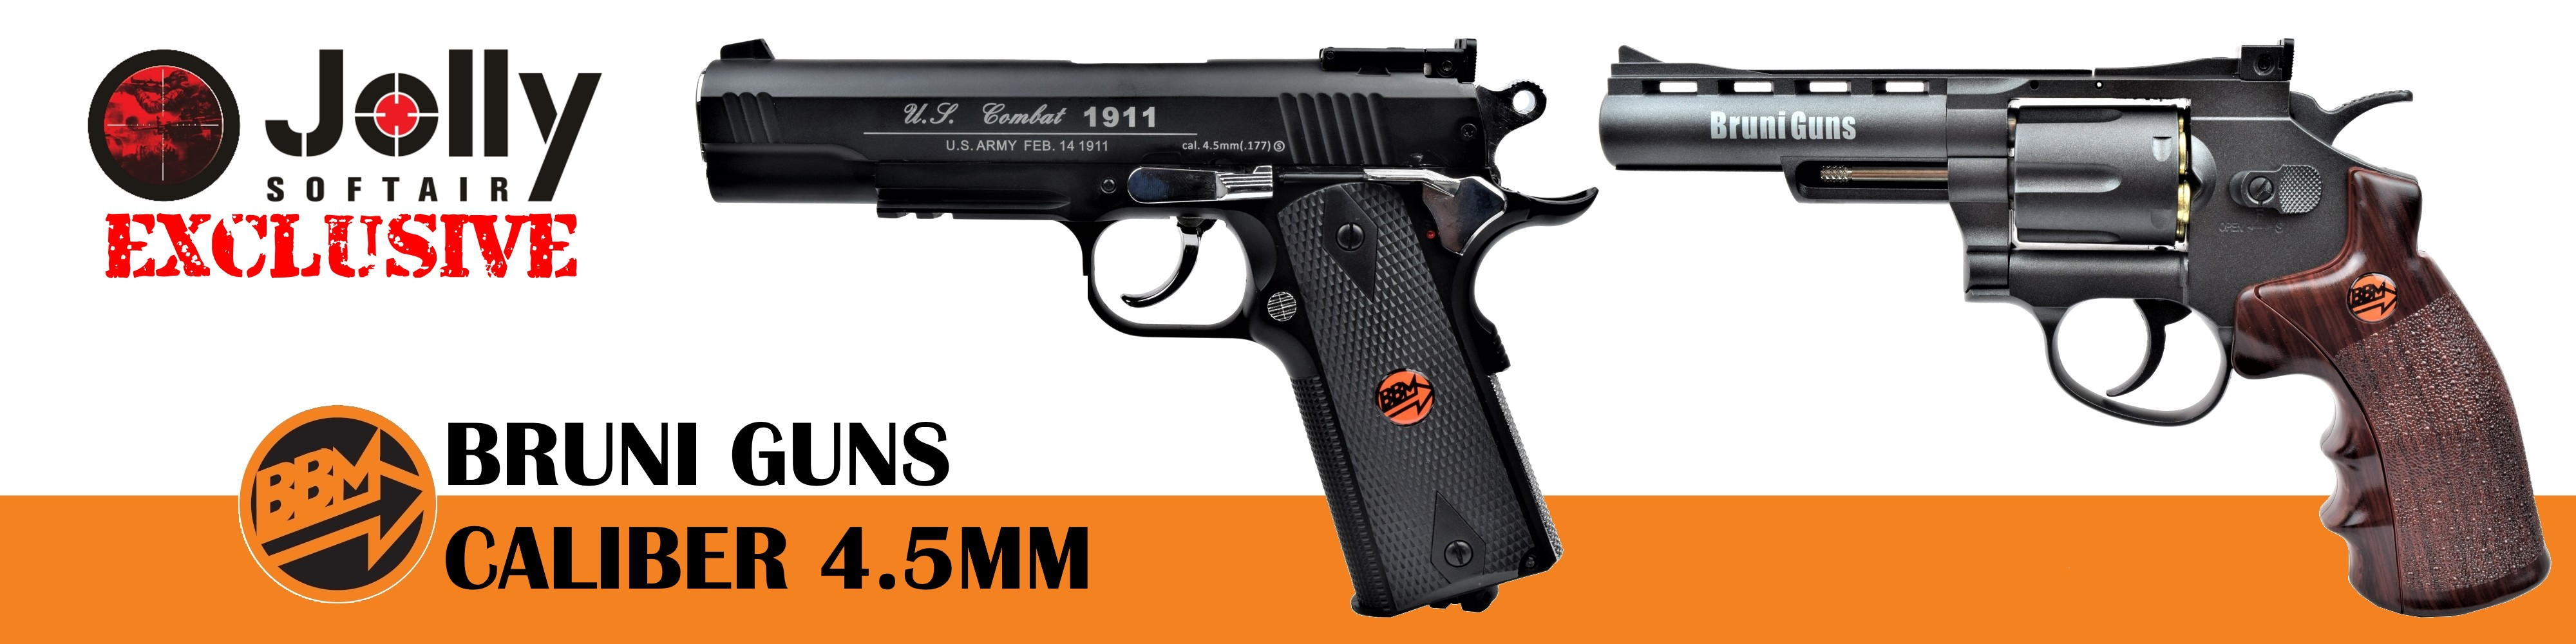 Jolly Softair exclusive, Bruni Guns CO2 caliber 4,5mm pistols